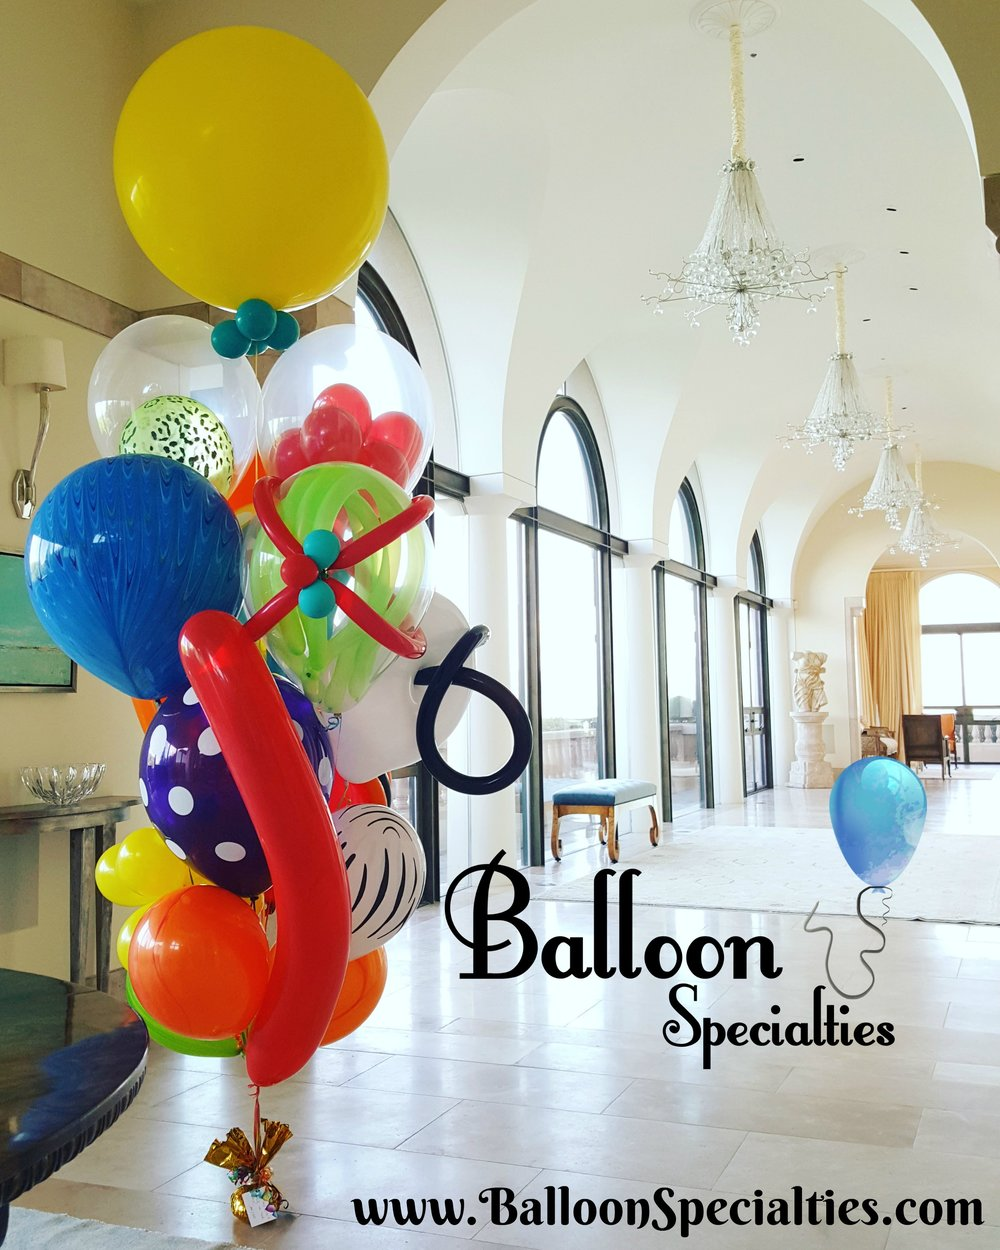 Balloon Specialties All Latex Bouquet.jpg